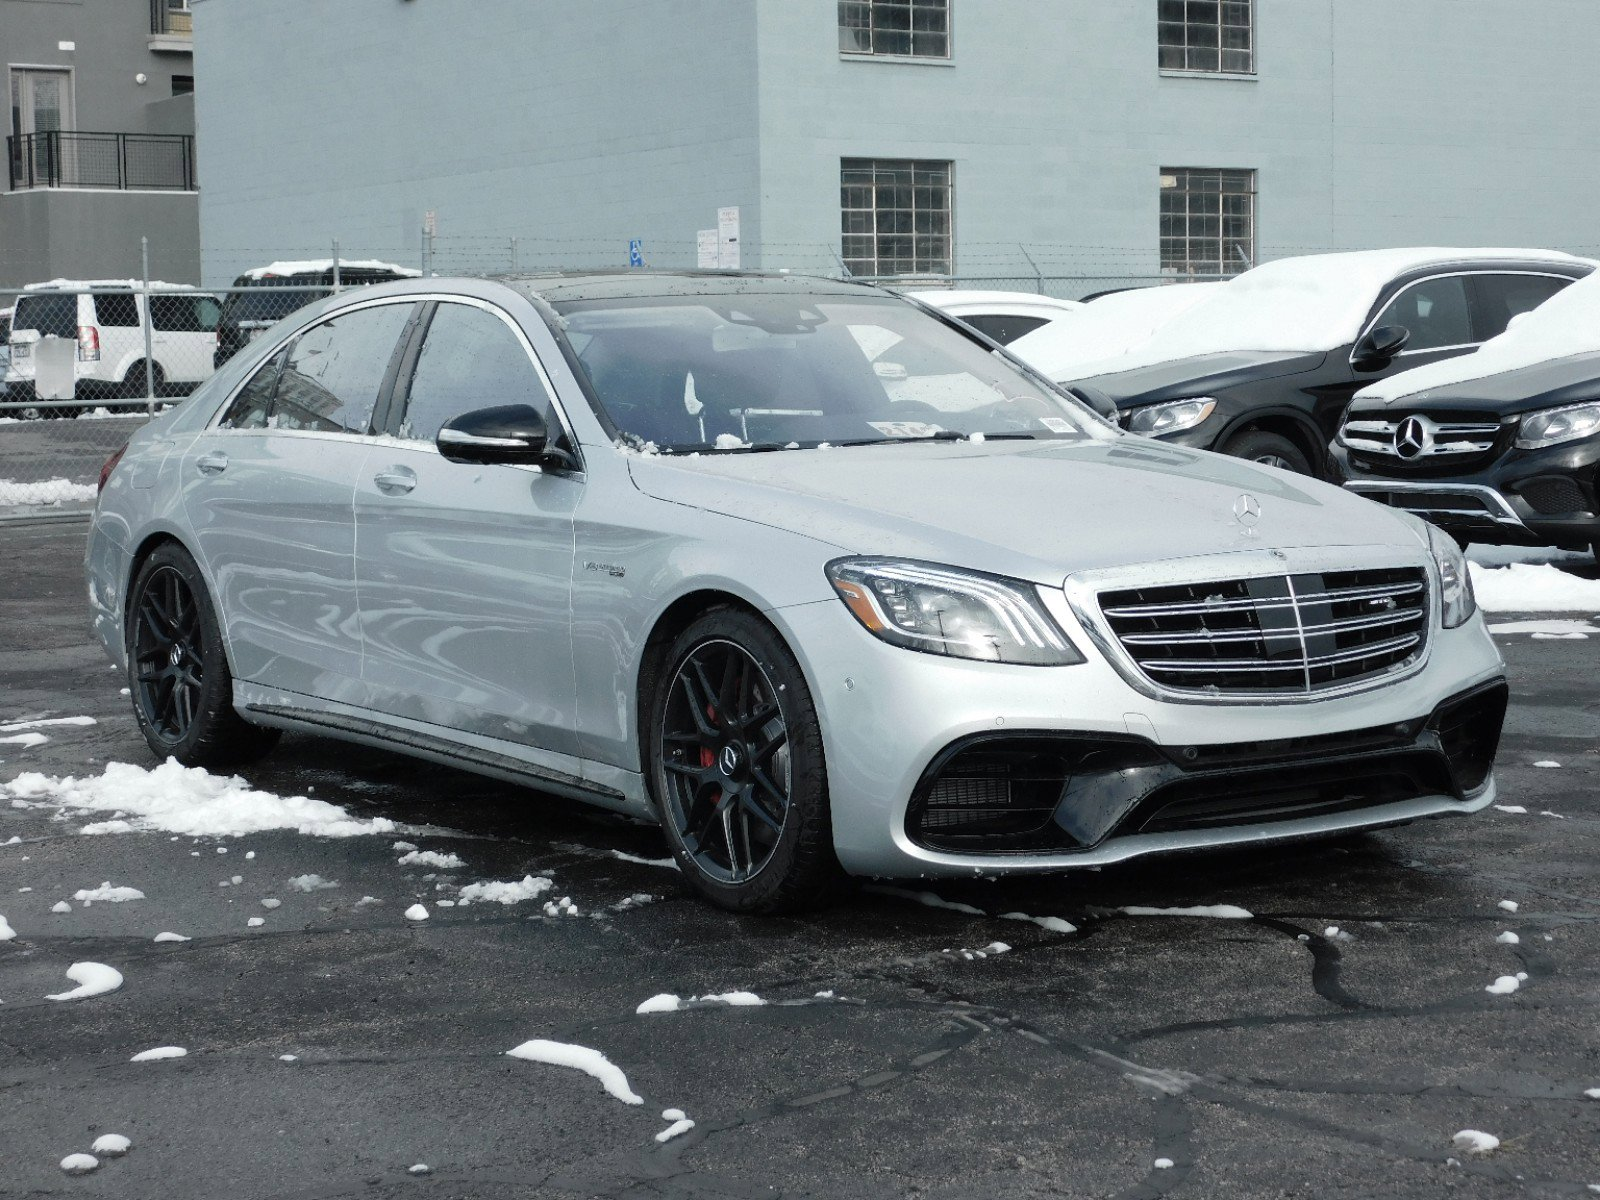 2019 Mercedes Benz S 63 Amg For Sale In Orem Ut 84058 Autotrader